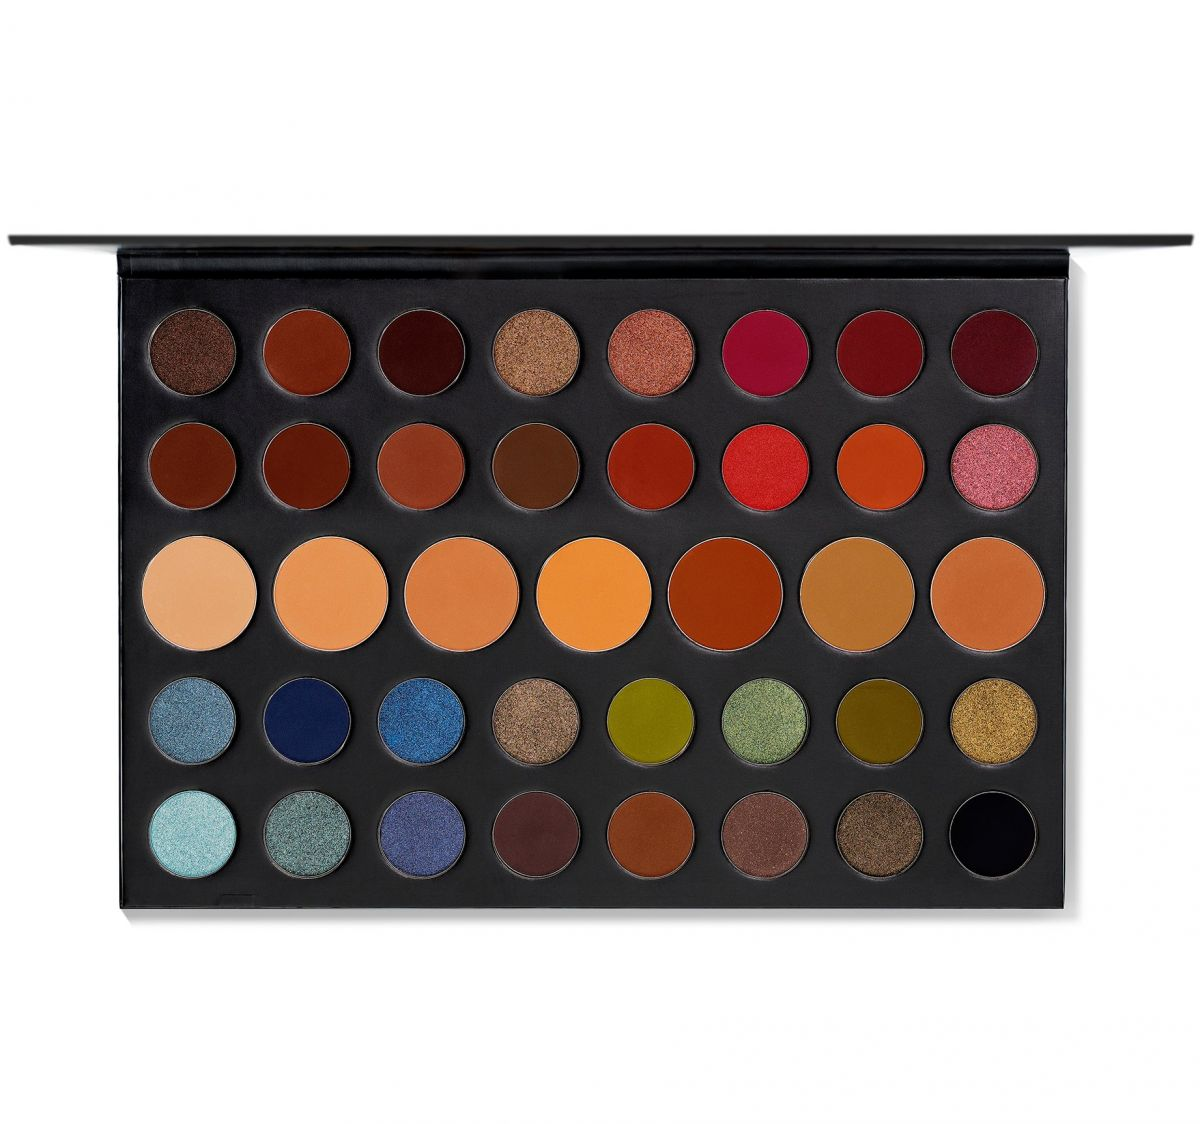 Палетка теней Morphe - 39A DARE TO CREATE ARTISTRY PALETTE